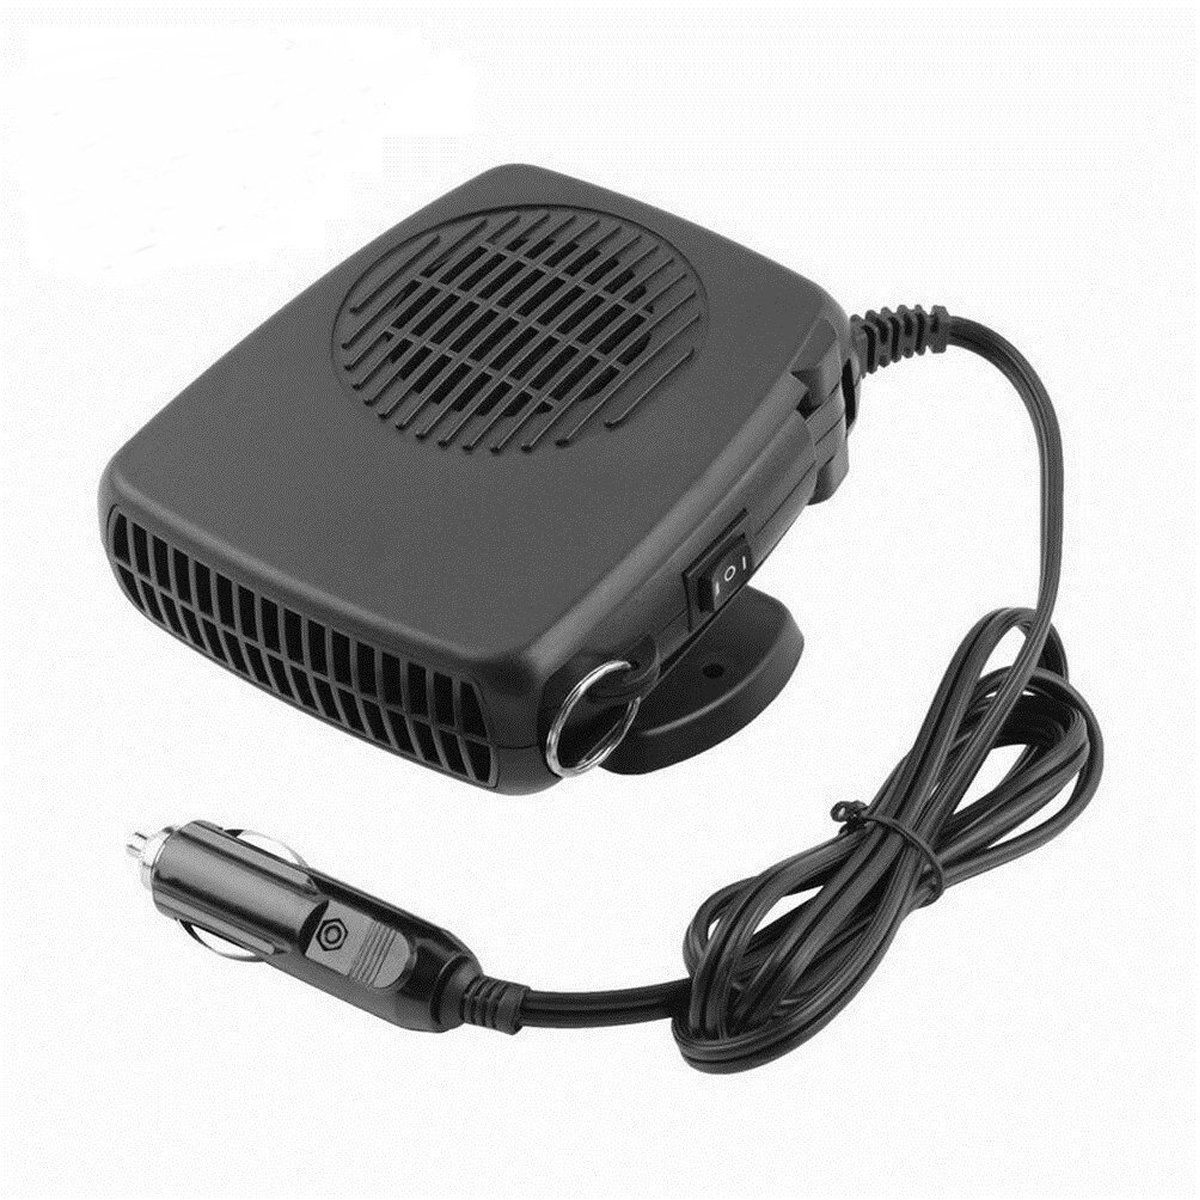 Car Heater, CHELIYA 12V 150W 2 in 1 Portable Auto Ceramic Car Heating Cooling Fan Heater Defroster Demister Black